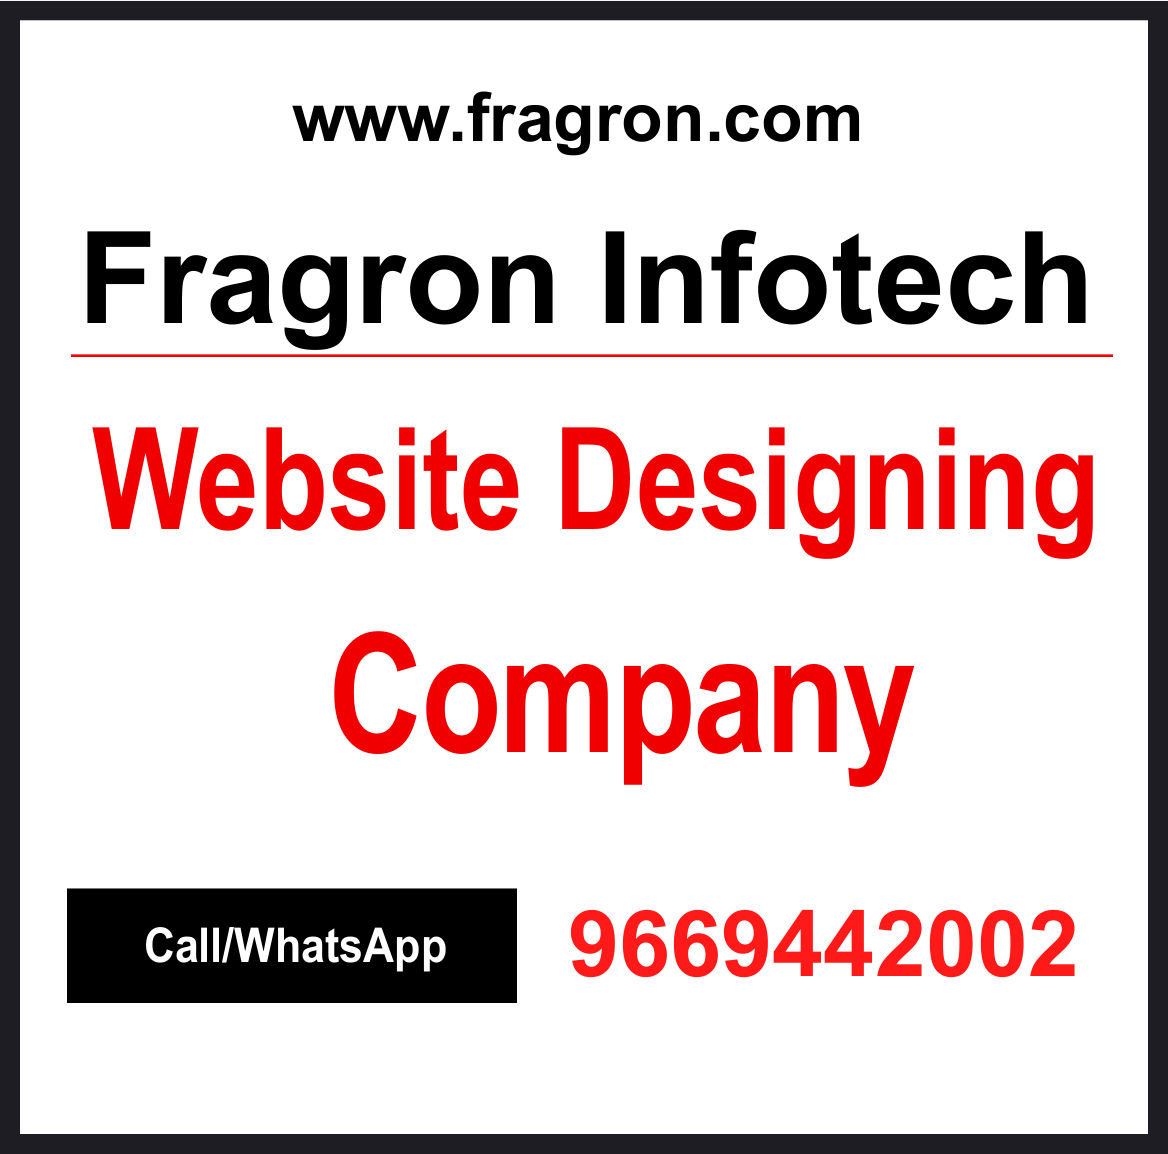 Website Designing Company in India.